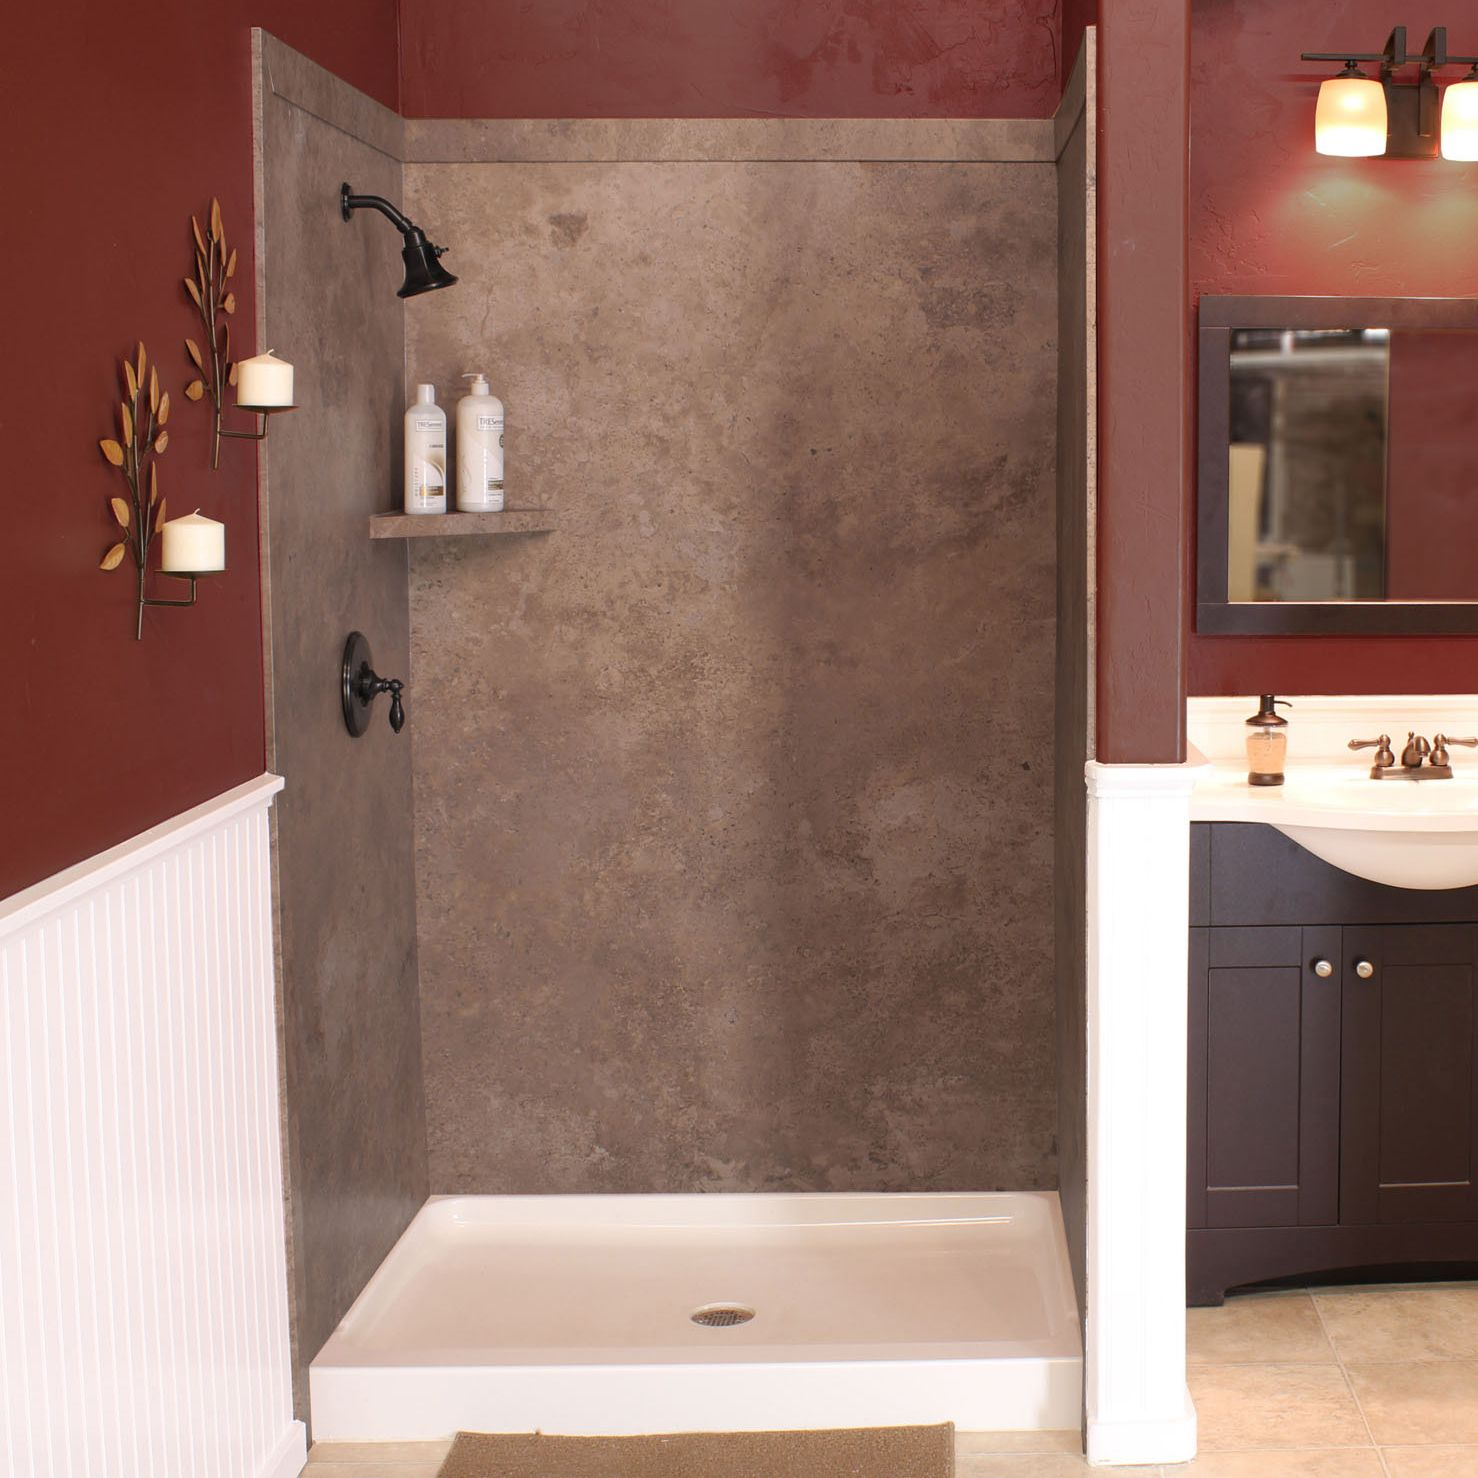 Surround Yourself With The Luxurious Look Of Natural Stone This